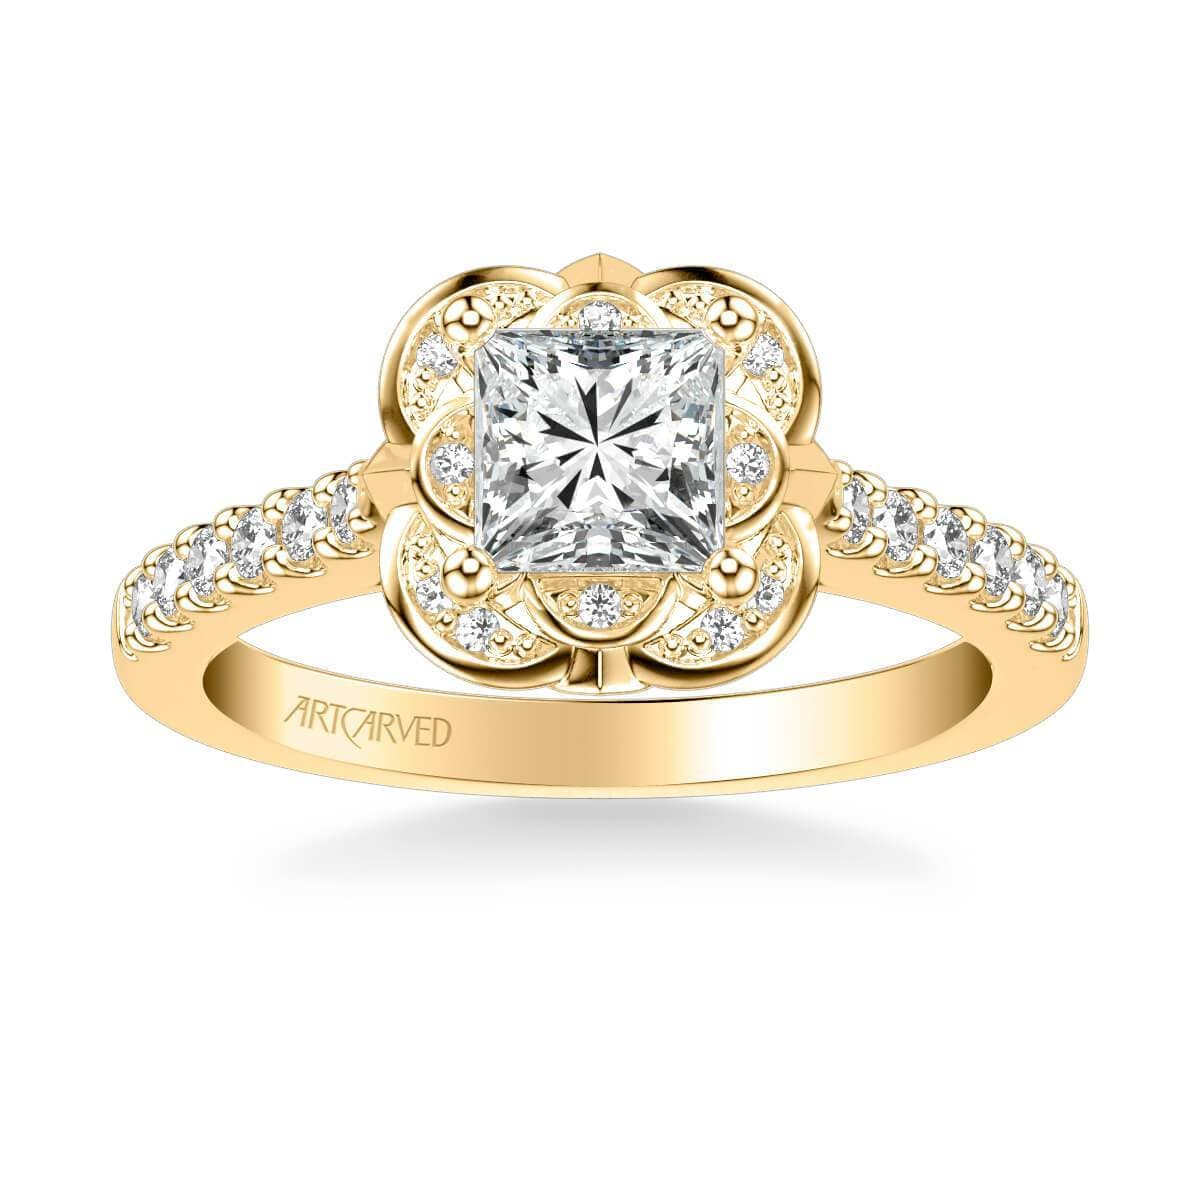 Skyler Contemporary Floral Halo Diamond Engagement Ring